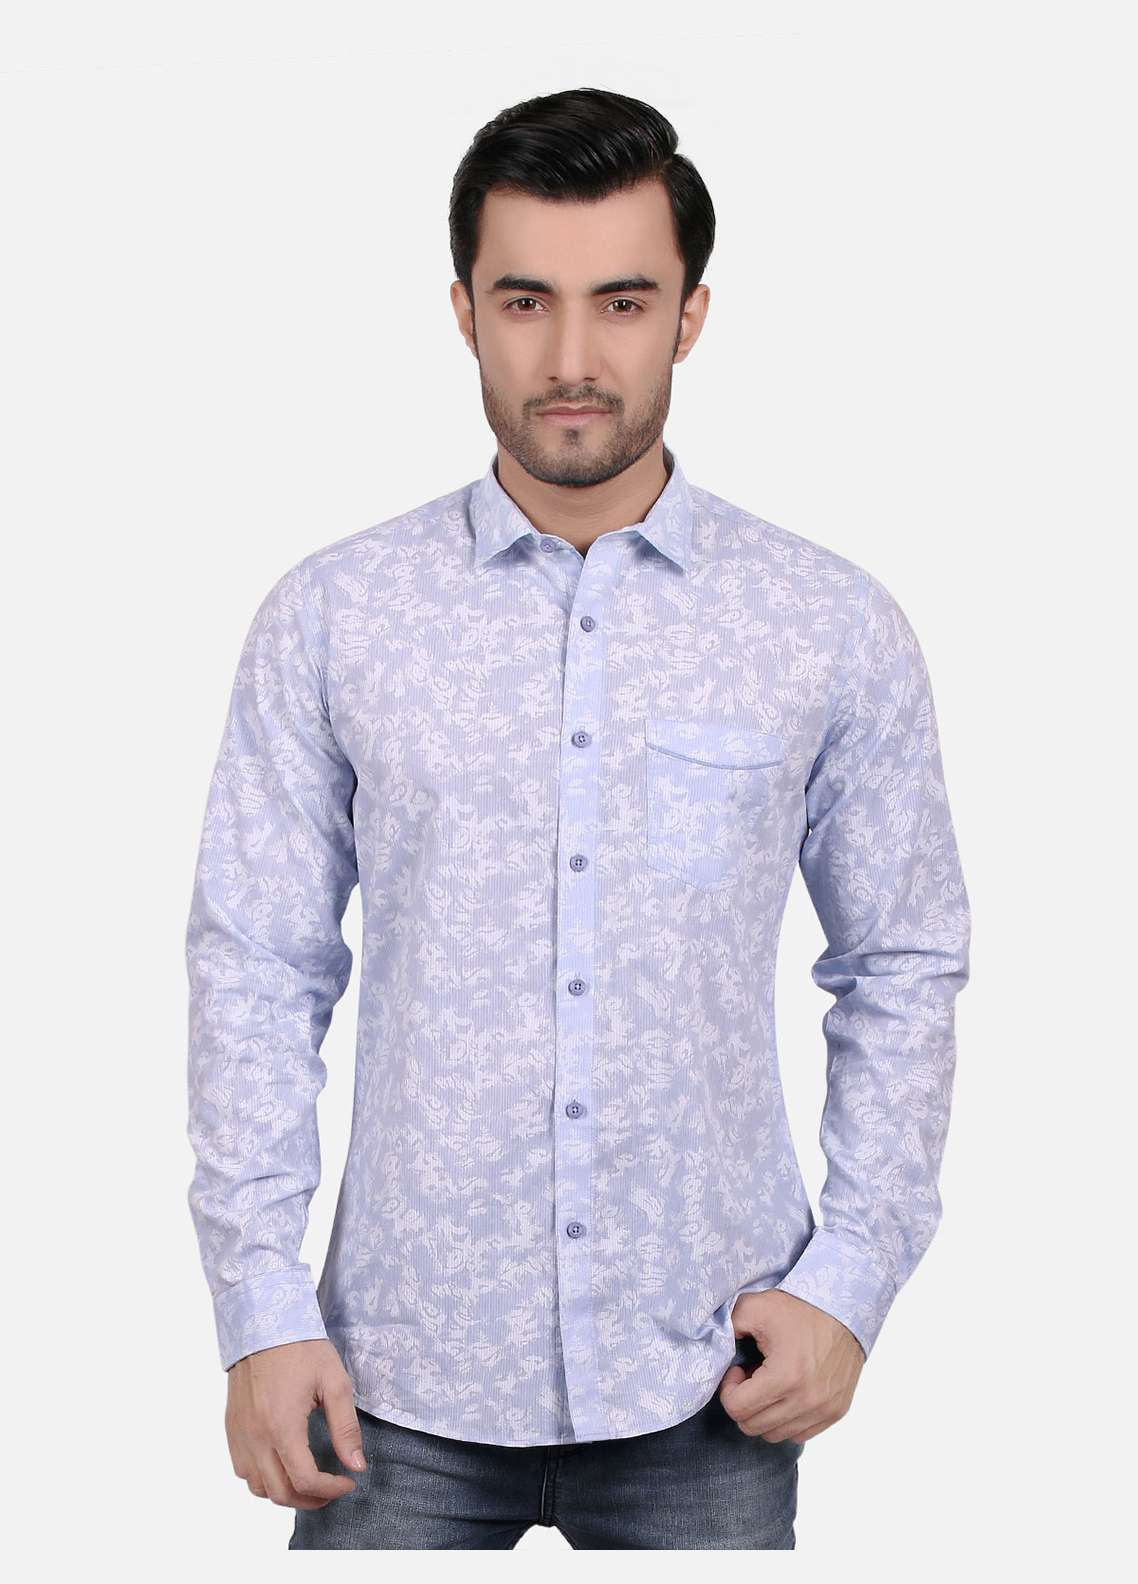 Furor  Casual Shirts for Men - Light Blue FRM18CS 31201